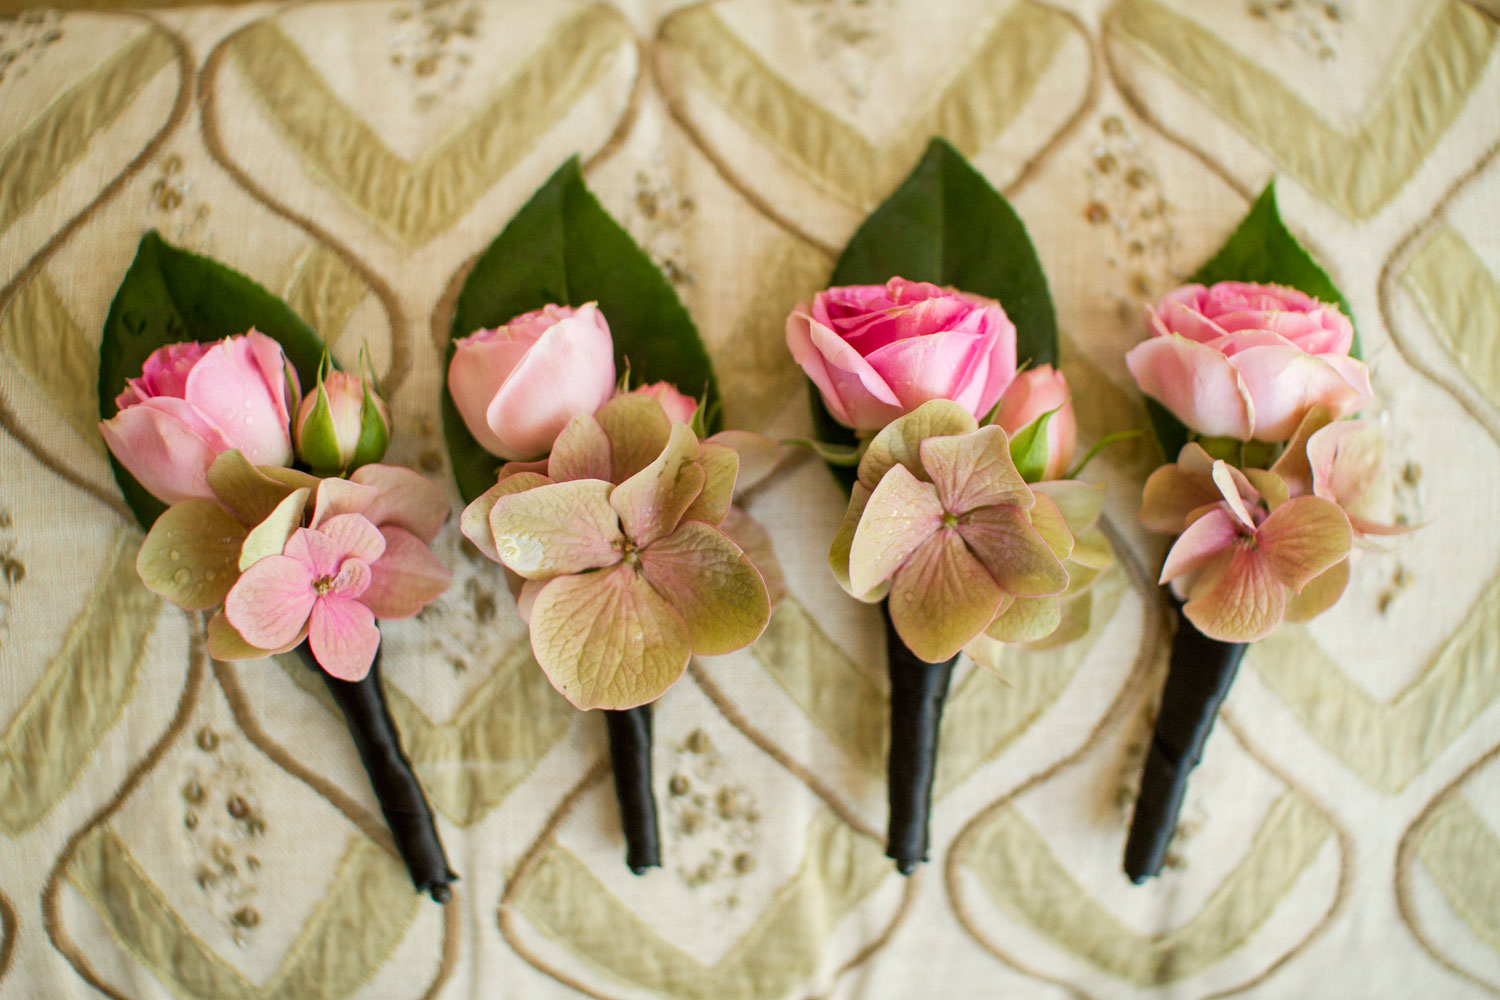 Pink boutonnieres for groom and groomsmen spring wedding ideas